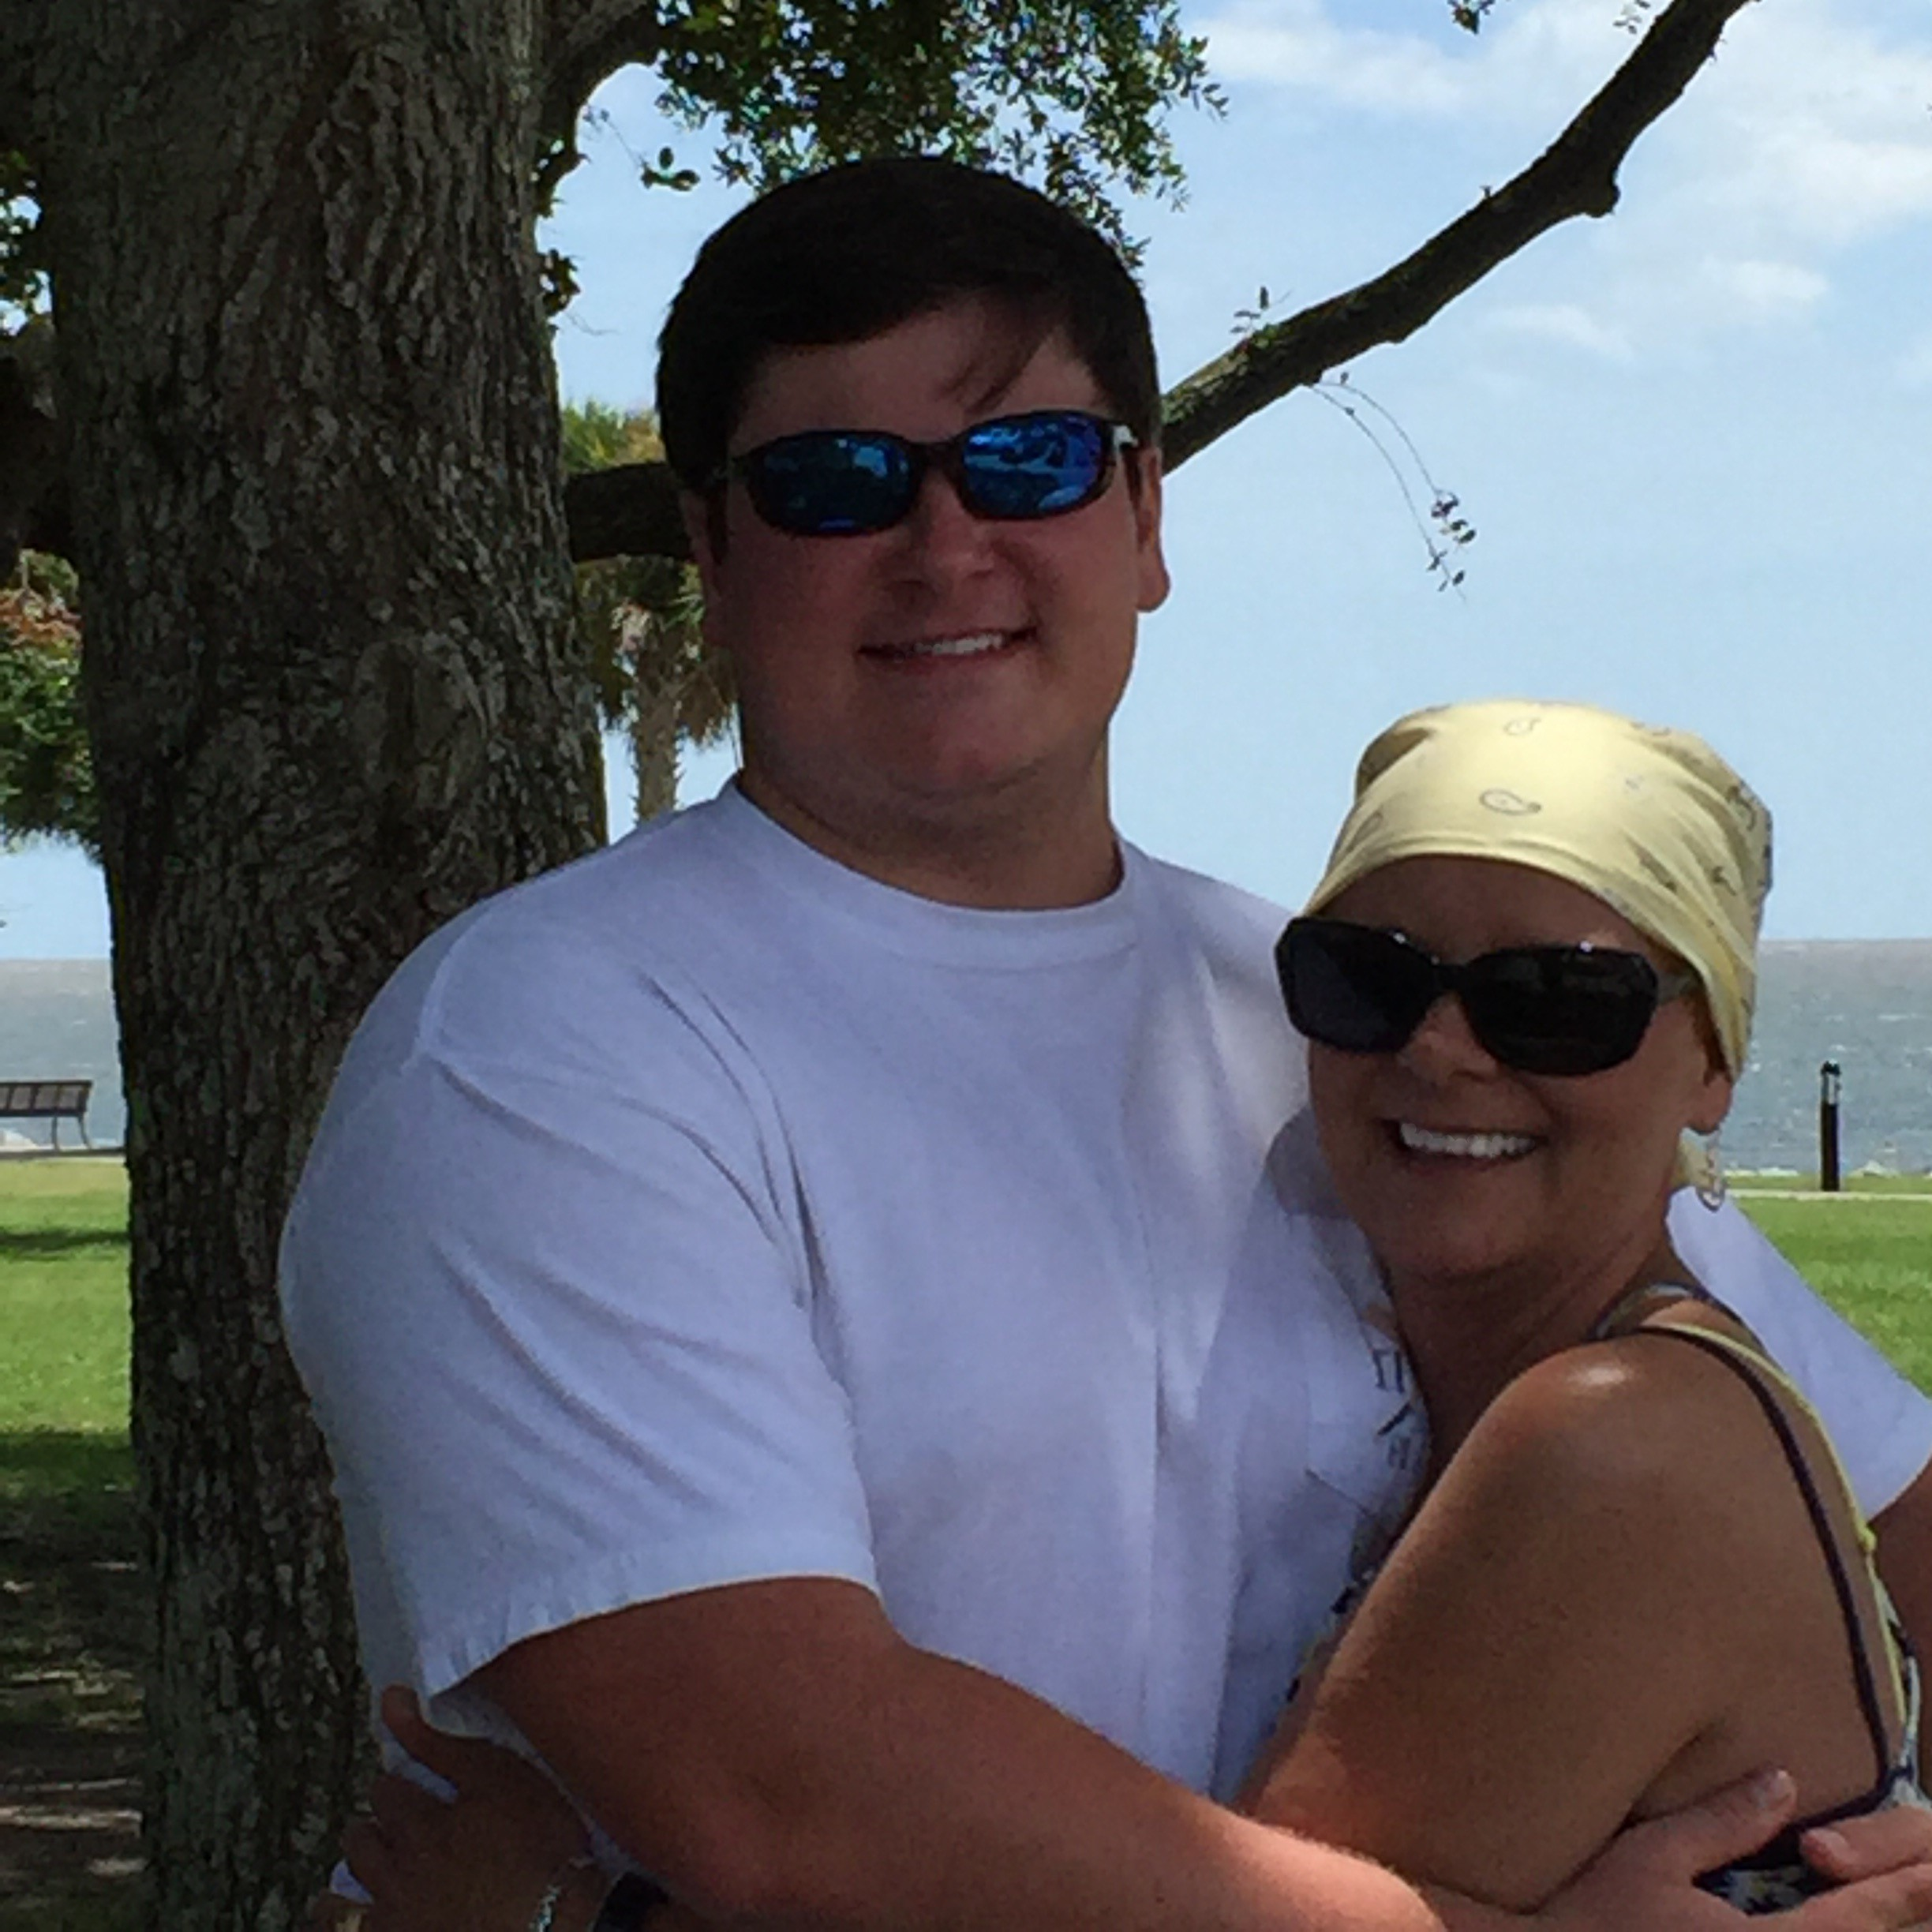 Rhonda Hodge and her son as featured on the Jesus Calling podcast